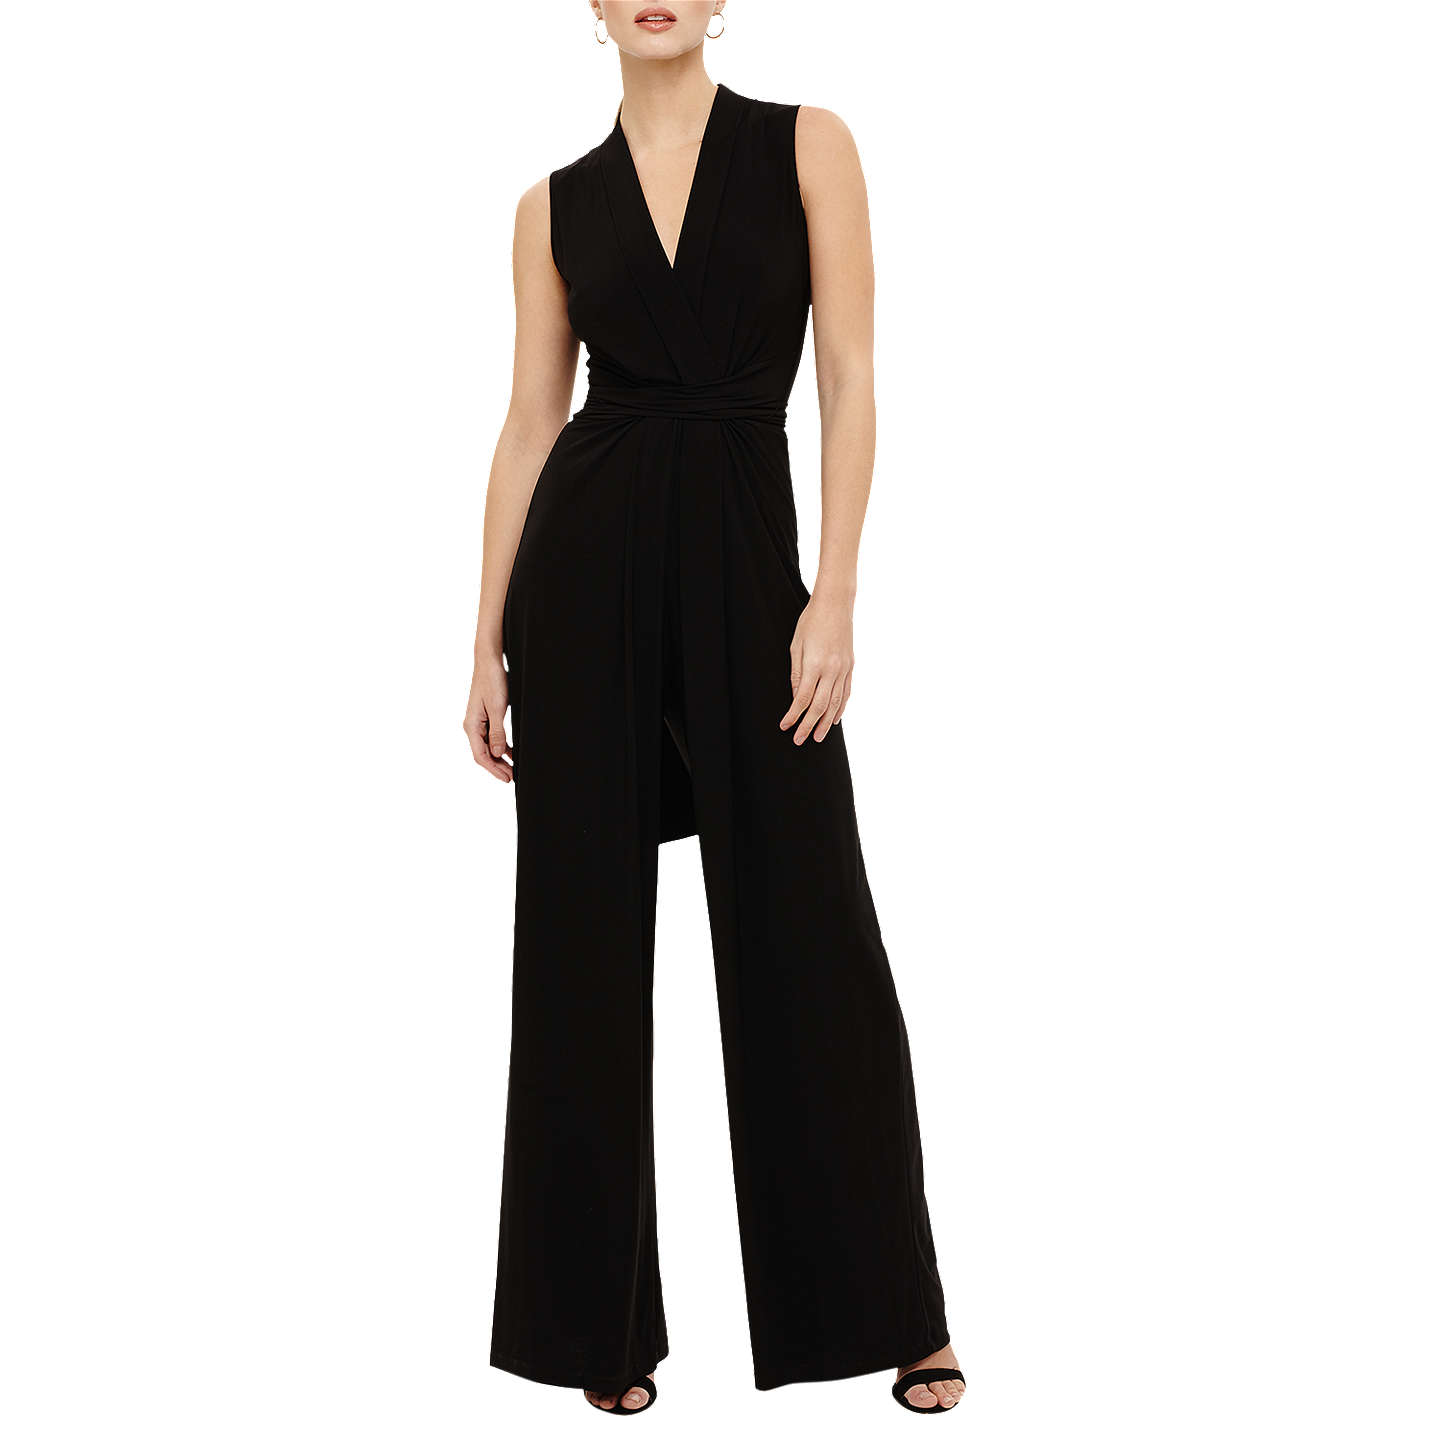 BuyPhase Eight Tia Sleeveless Jumpsuit, Black, 6 Online at johnlewis.com